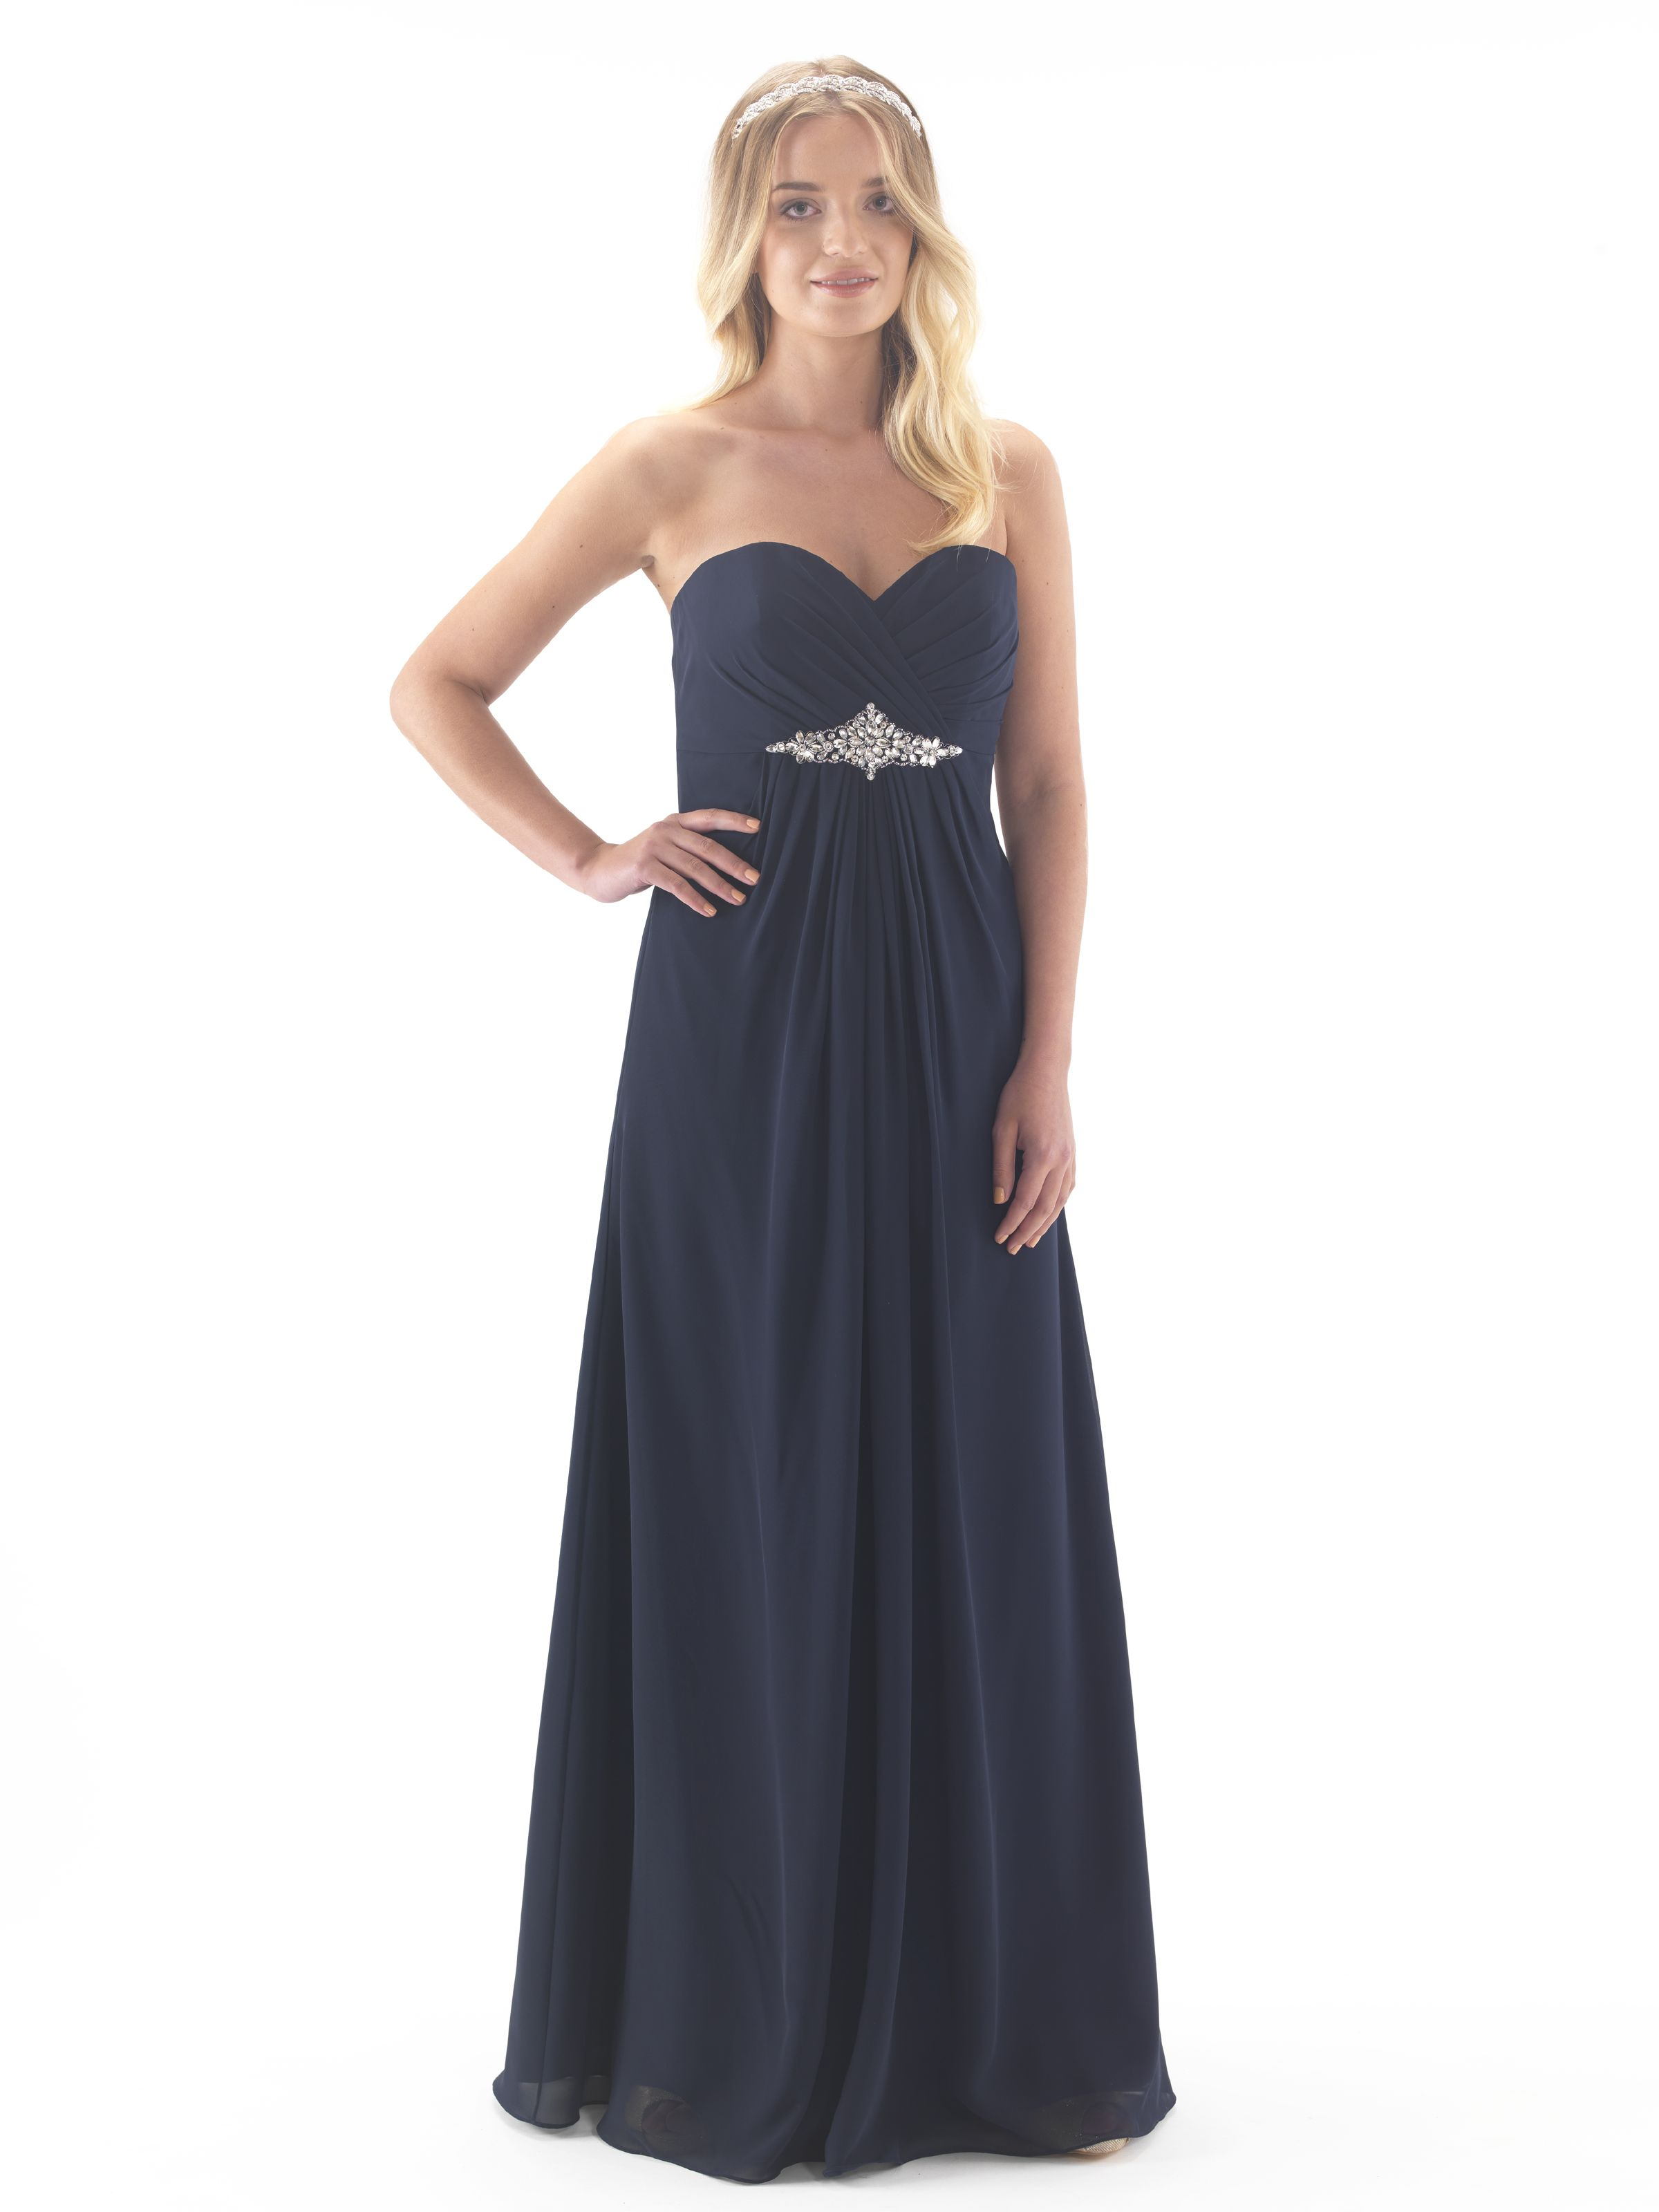 Linzi jay en388 chiffon full length bridesmaid dress sparkle linzi jay en388 chiffon full length bridesmaid dress midnight blueblack ombrellifo Choice Image